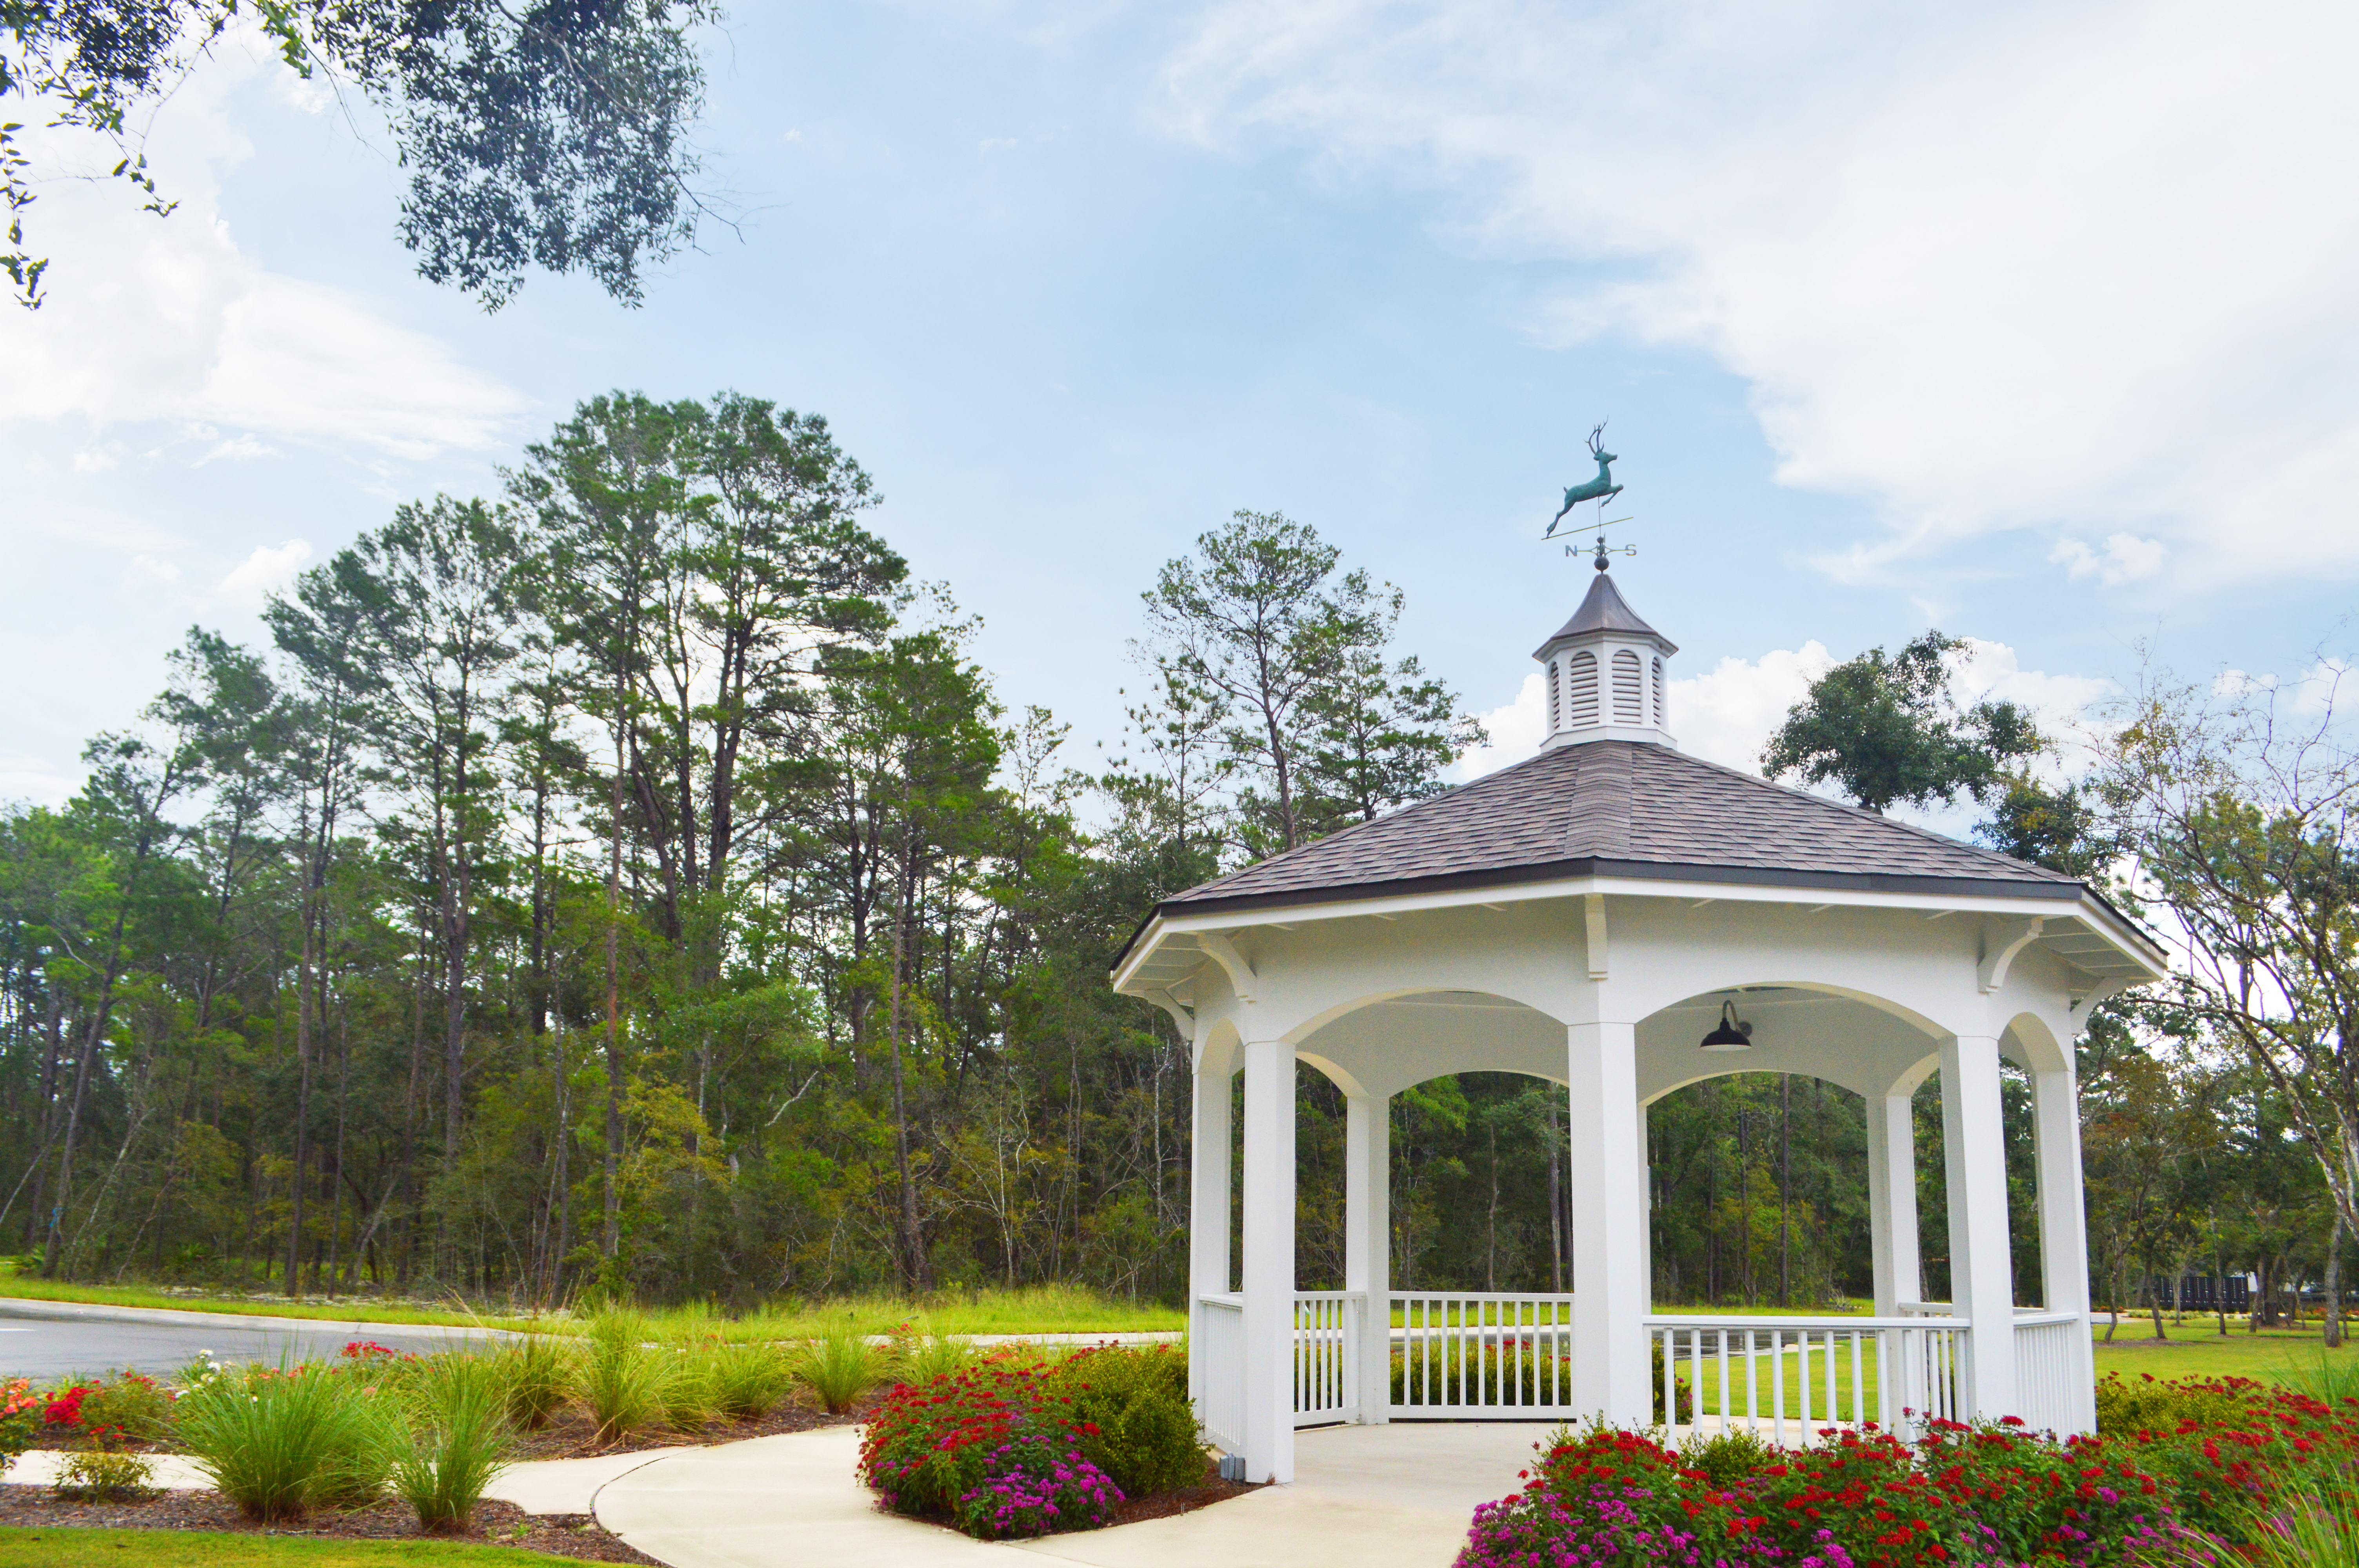 Deer Moss Creek Gazebo